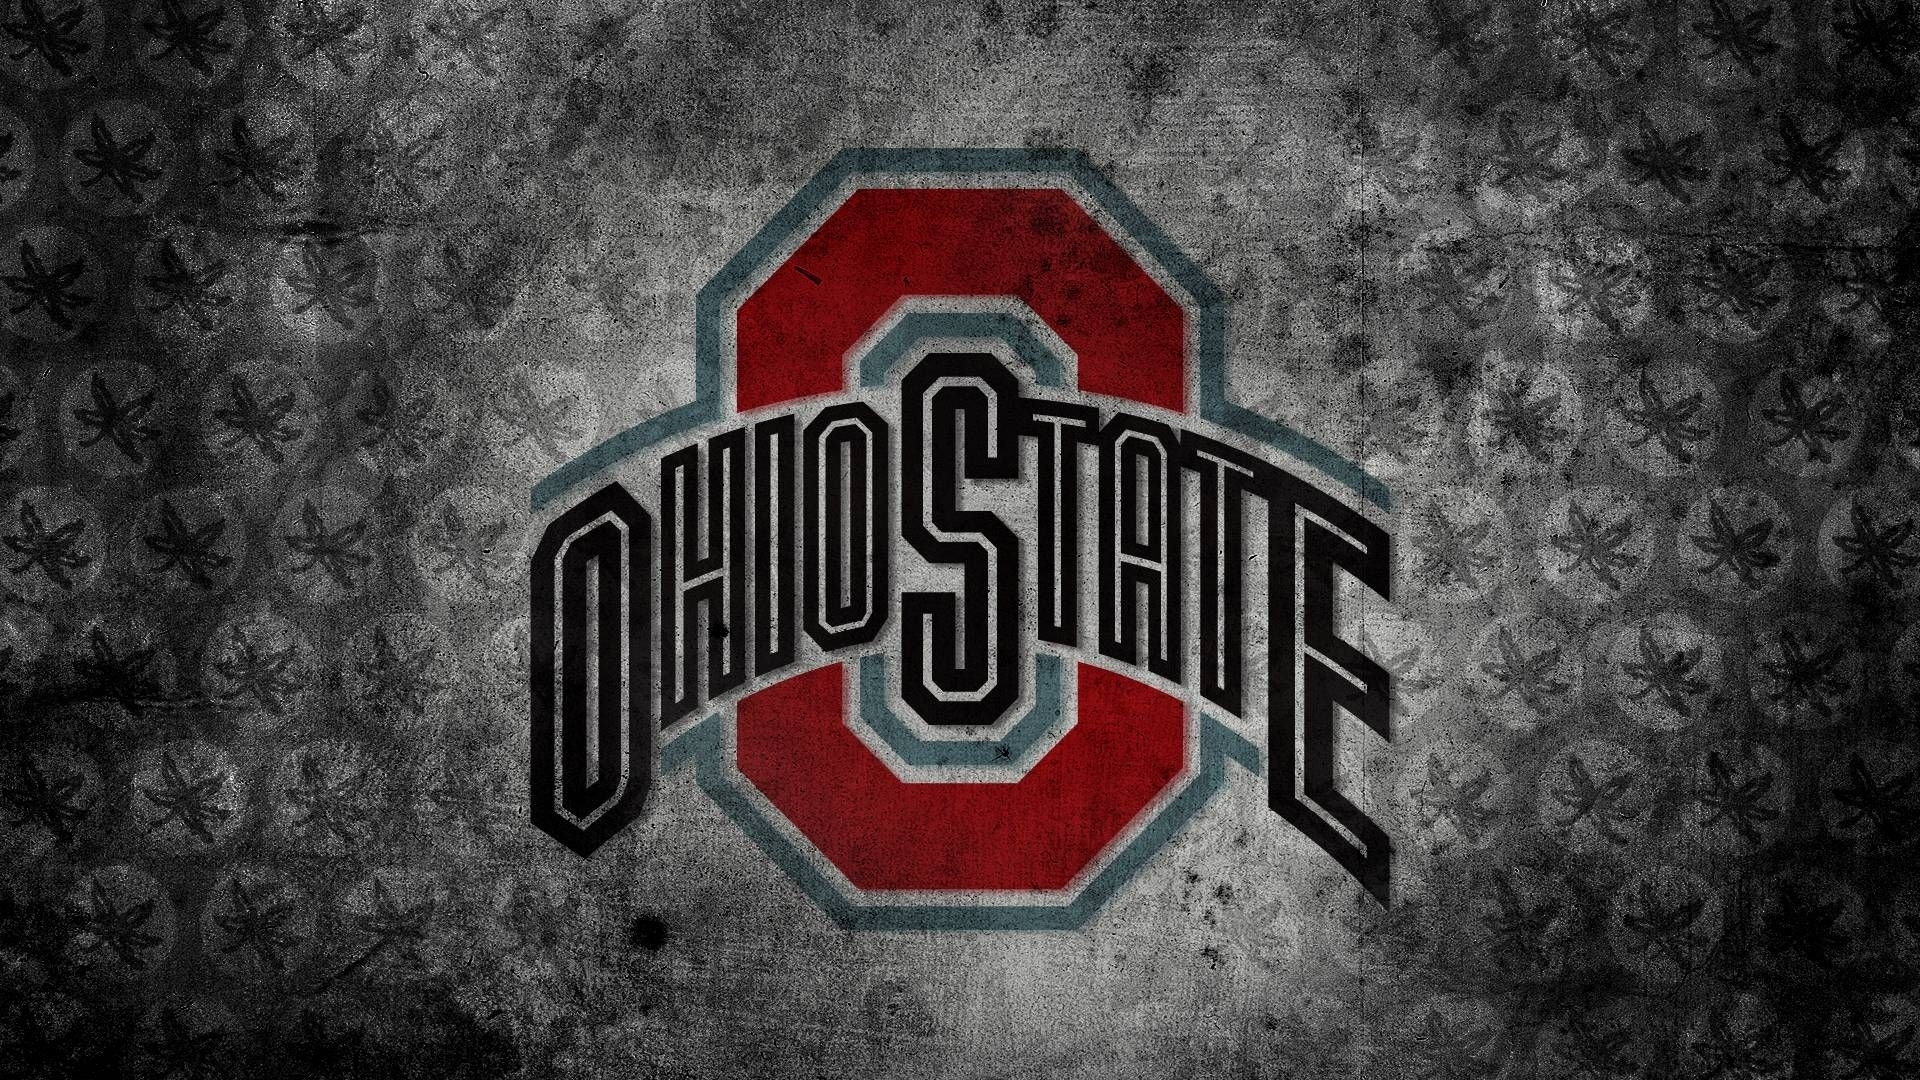 10 Latest Ohio State Buckeyes Football Wallpapers FULL HD 1080p For PC Desktop